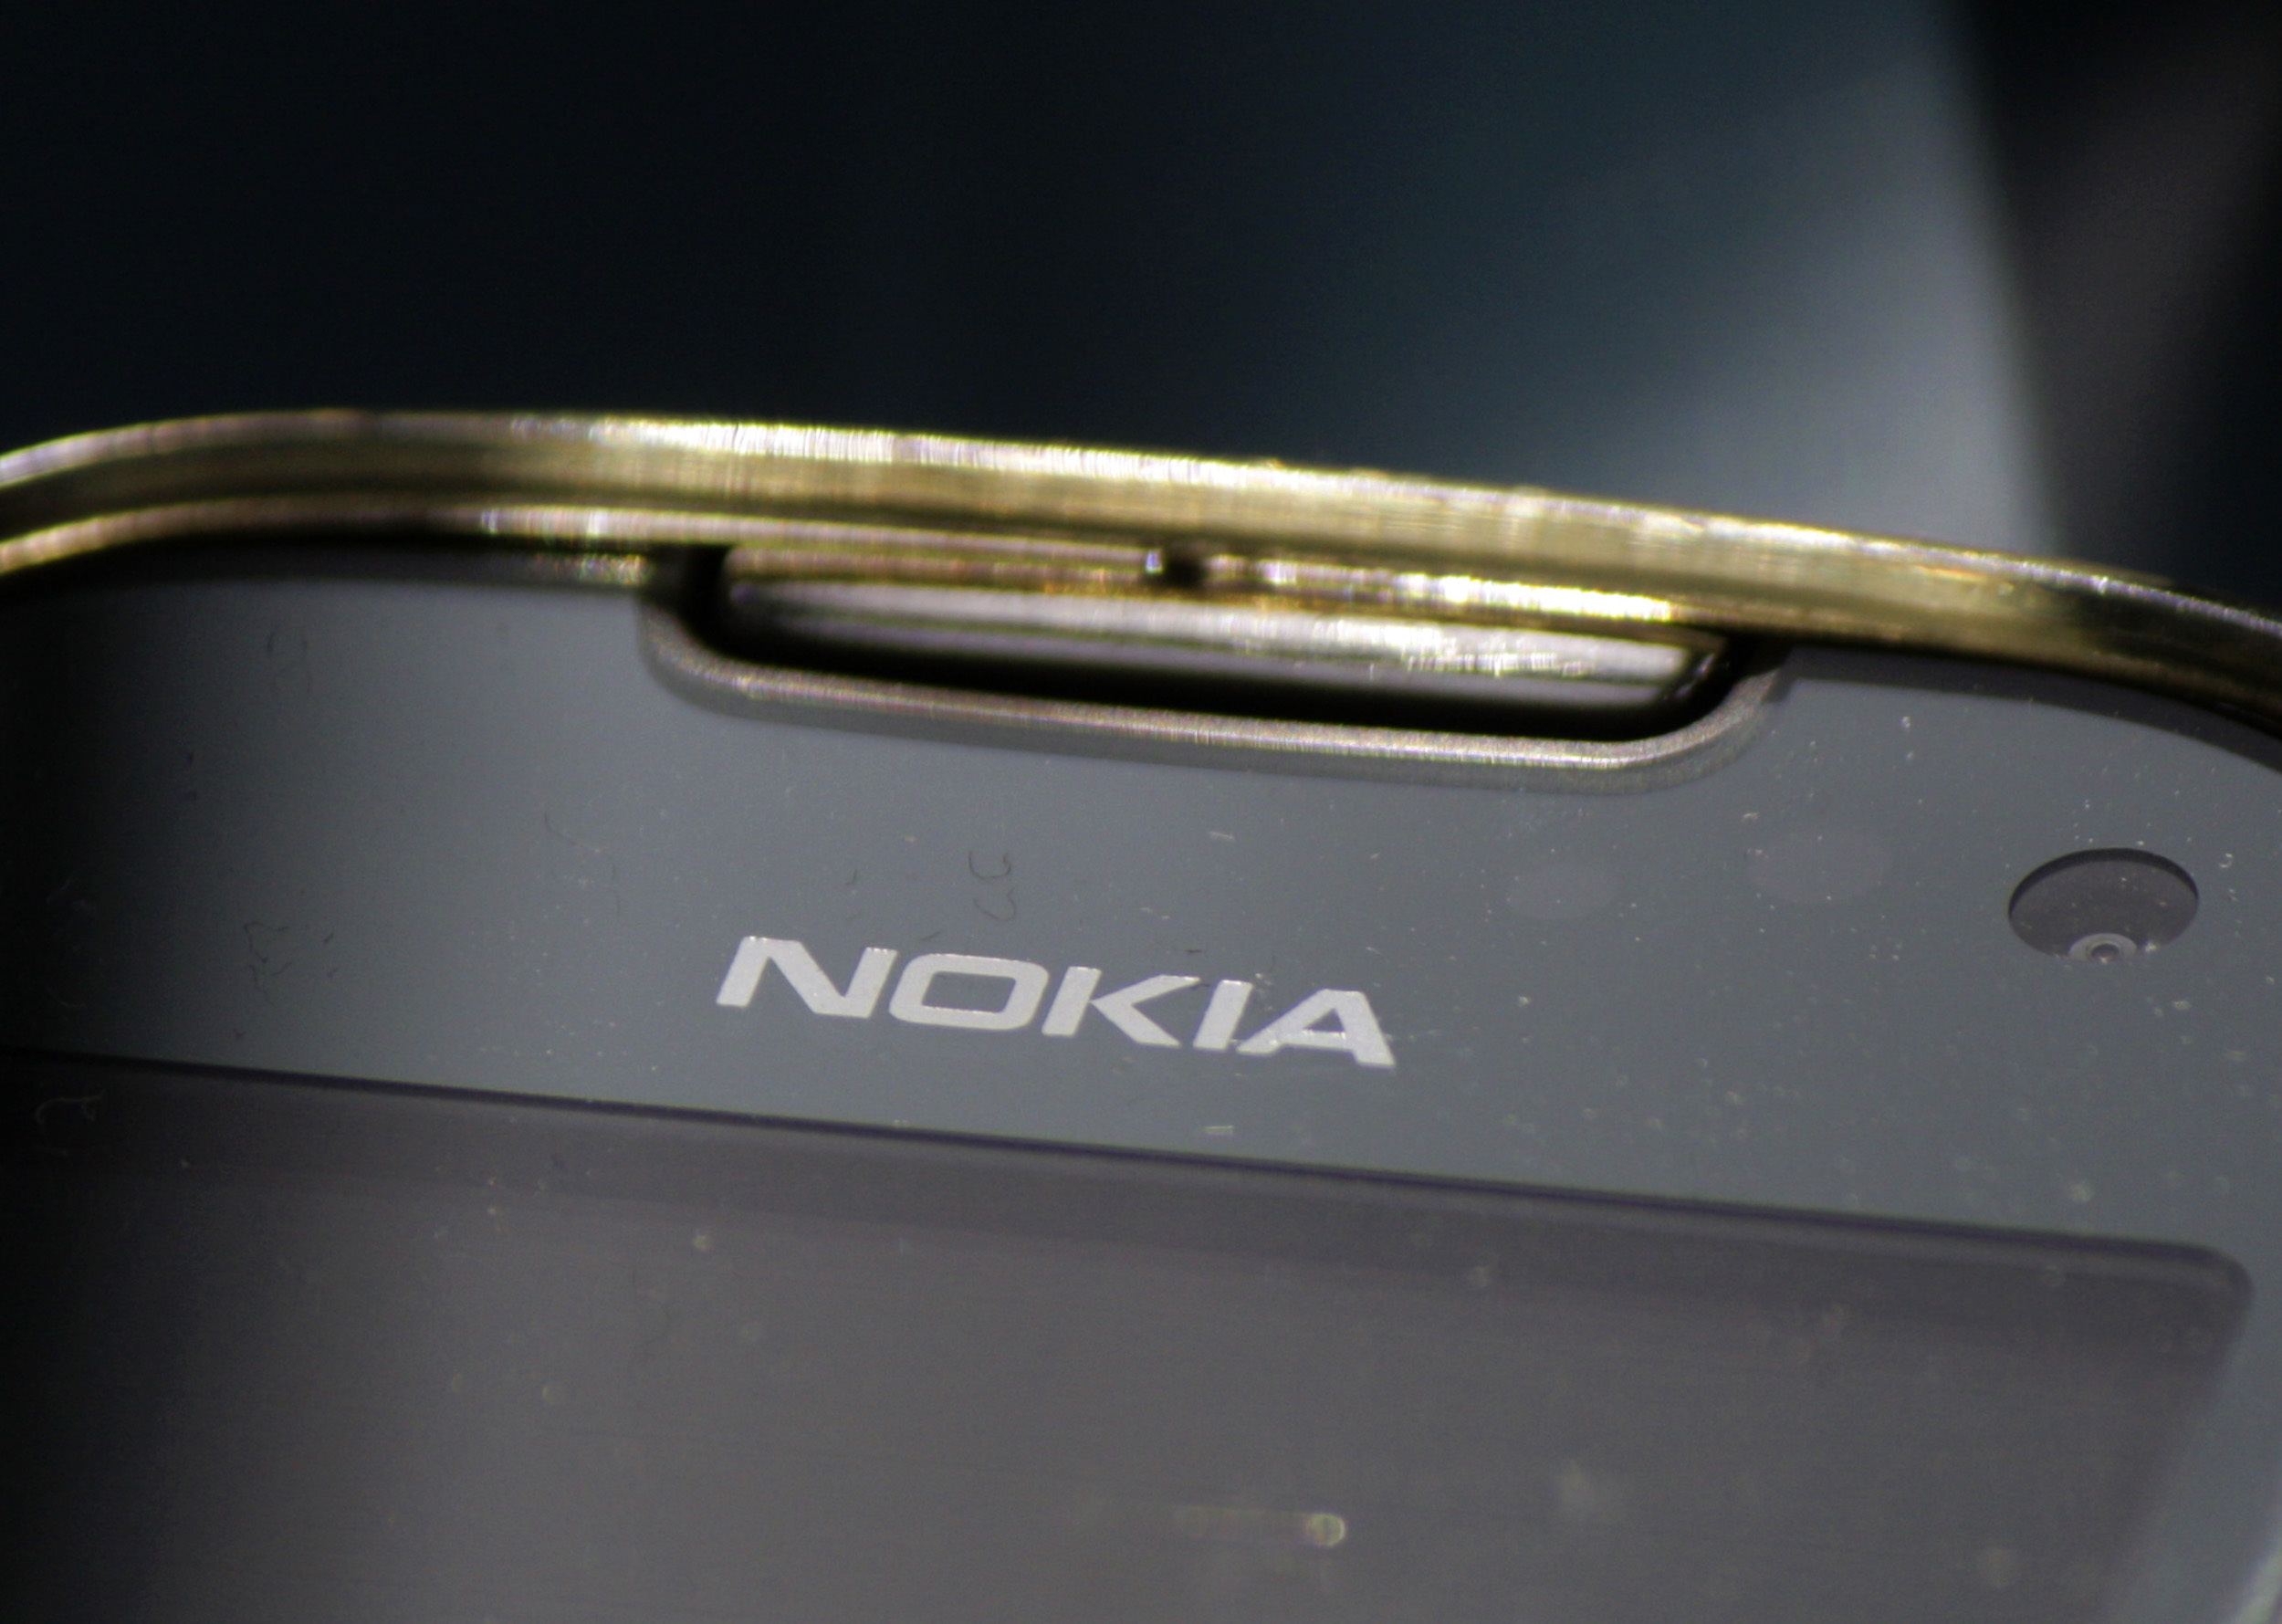 Nokia passed Motorola to become the fourth largest US smartphone brand in Q3 2013